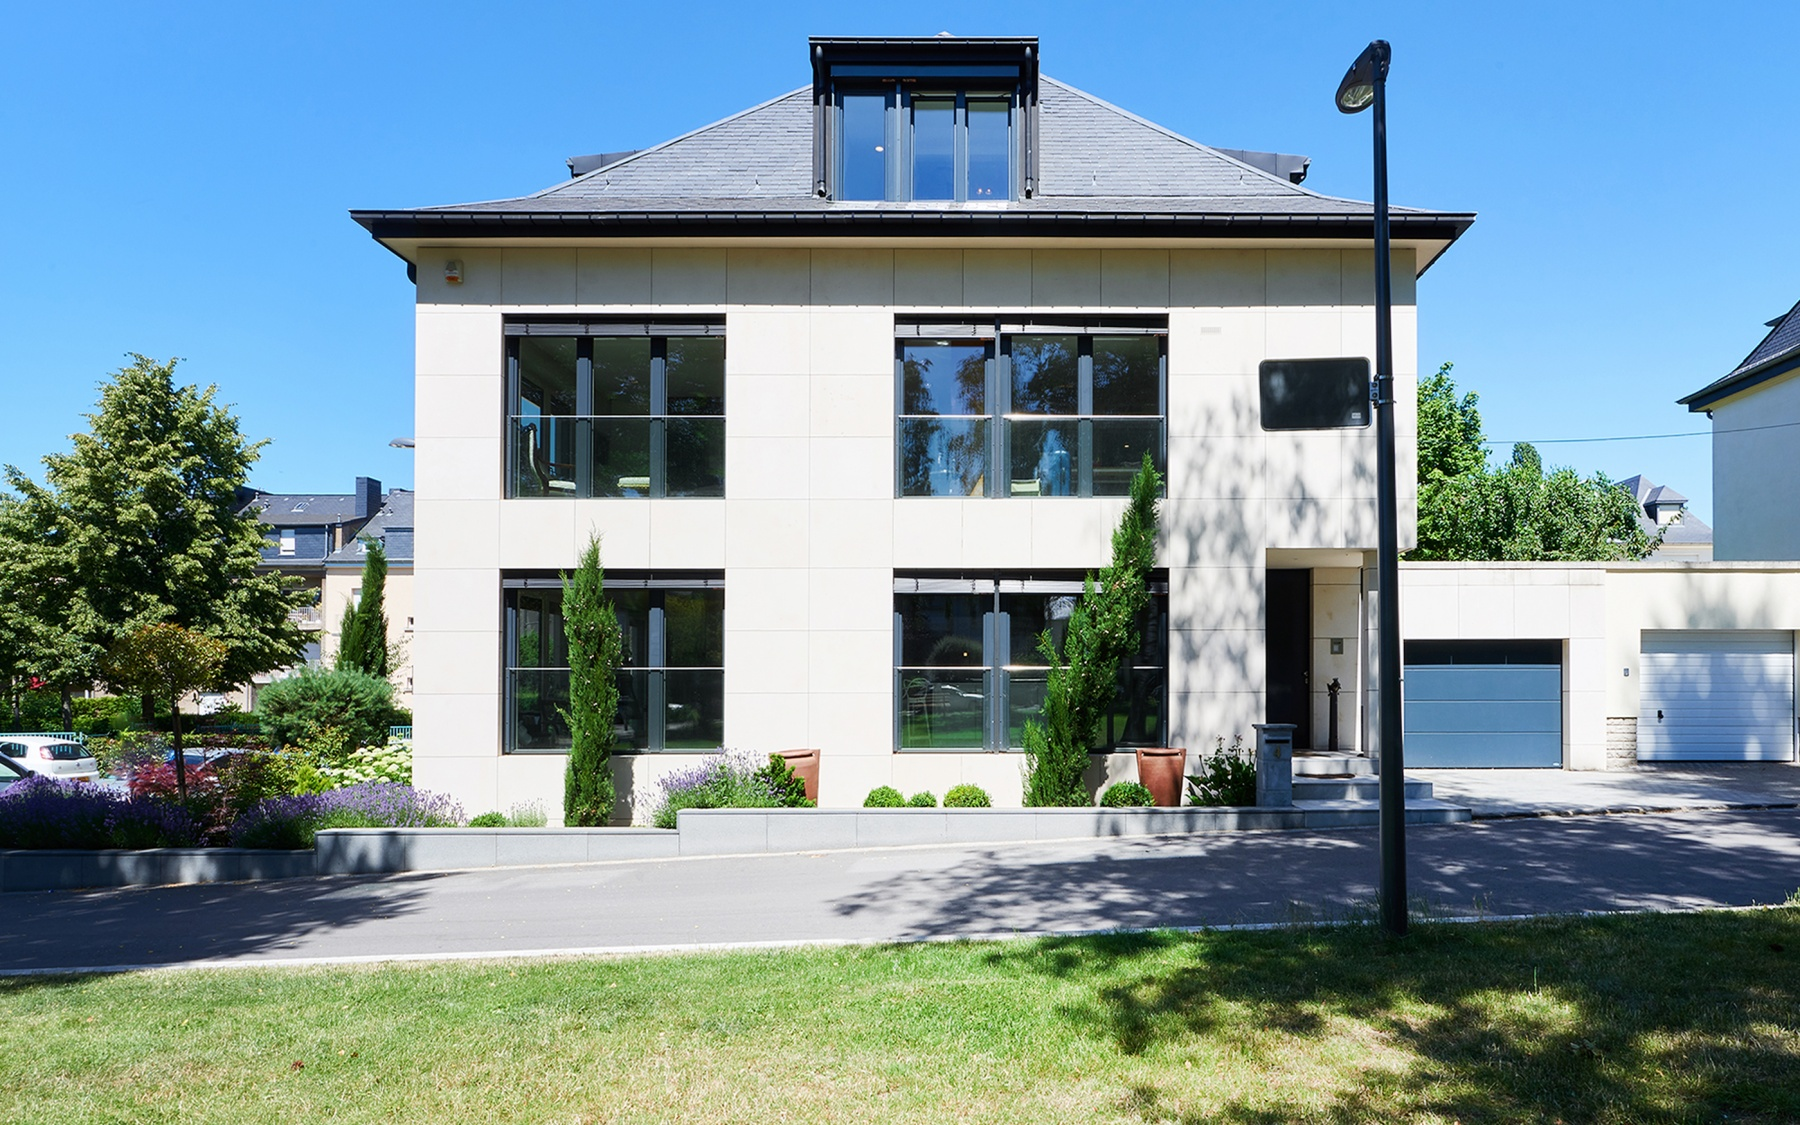 Maison Moderne A Luxembourg Limpertsberg Luxembourg Sotheby S International Realty